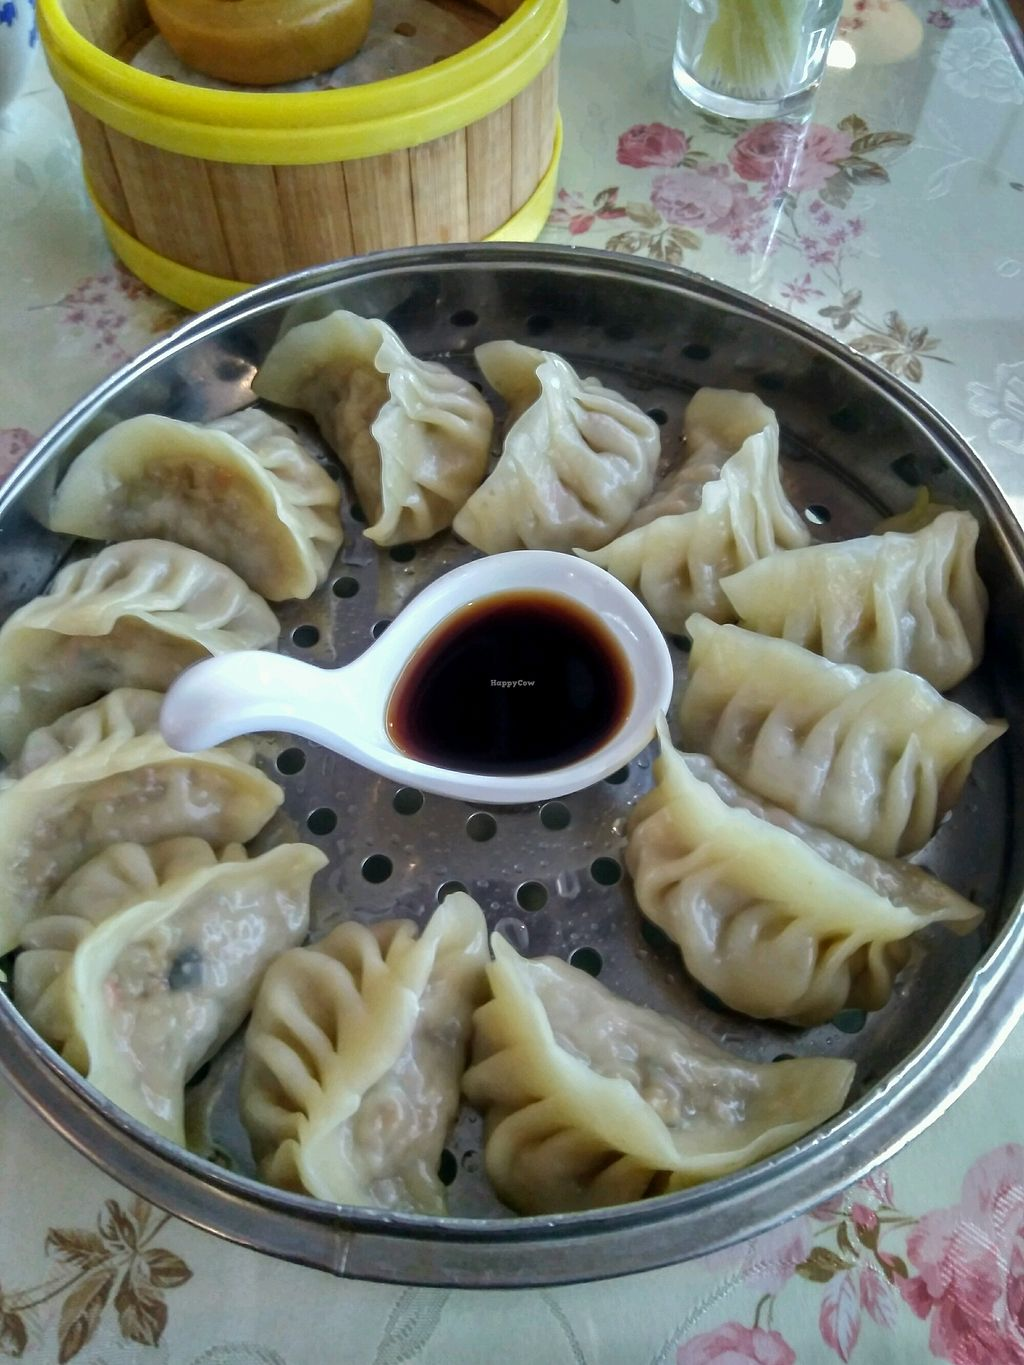 """Photo of Huiyuan Sanbao Health Preservation Vegetarian  by <a href=""""/members/profile/JackTanner"""">JackTanner</a> <br/>dumplings  <br/> January 12, 2018  - <a href='/contact/abuse/image/107424/345681'>Report</a>"""